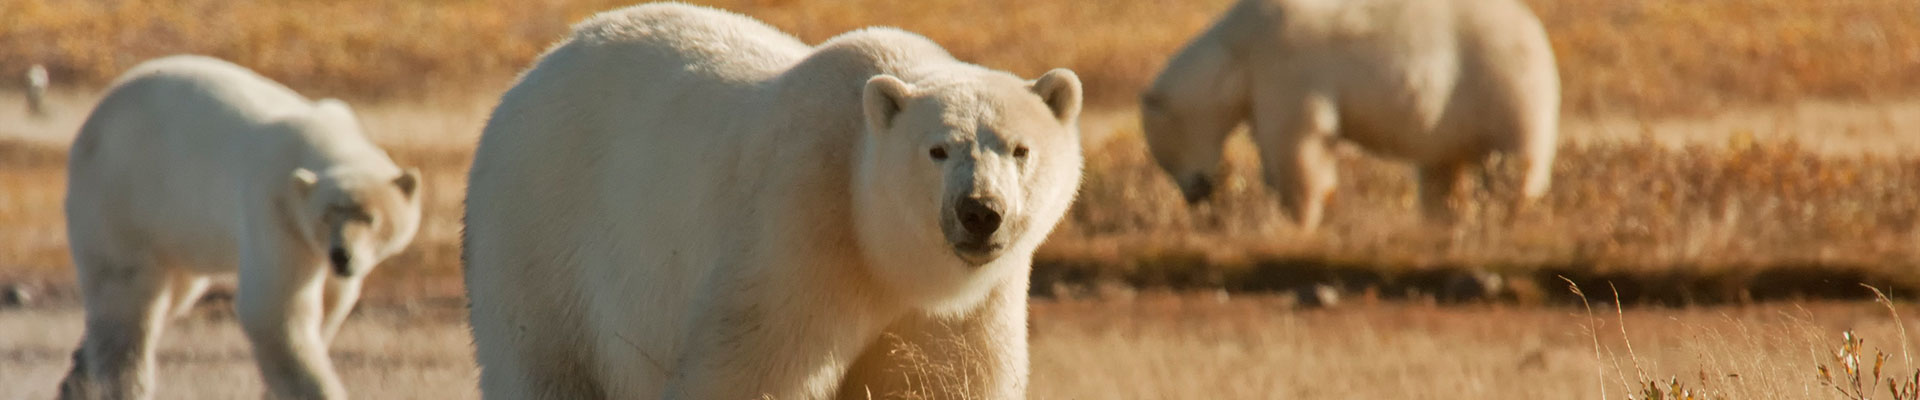 Fantasy RV Tours: 15 Day Polar Bear Migration (15CPBG-100219)